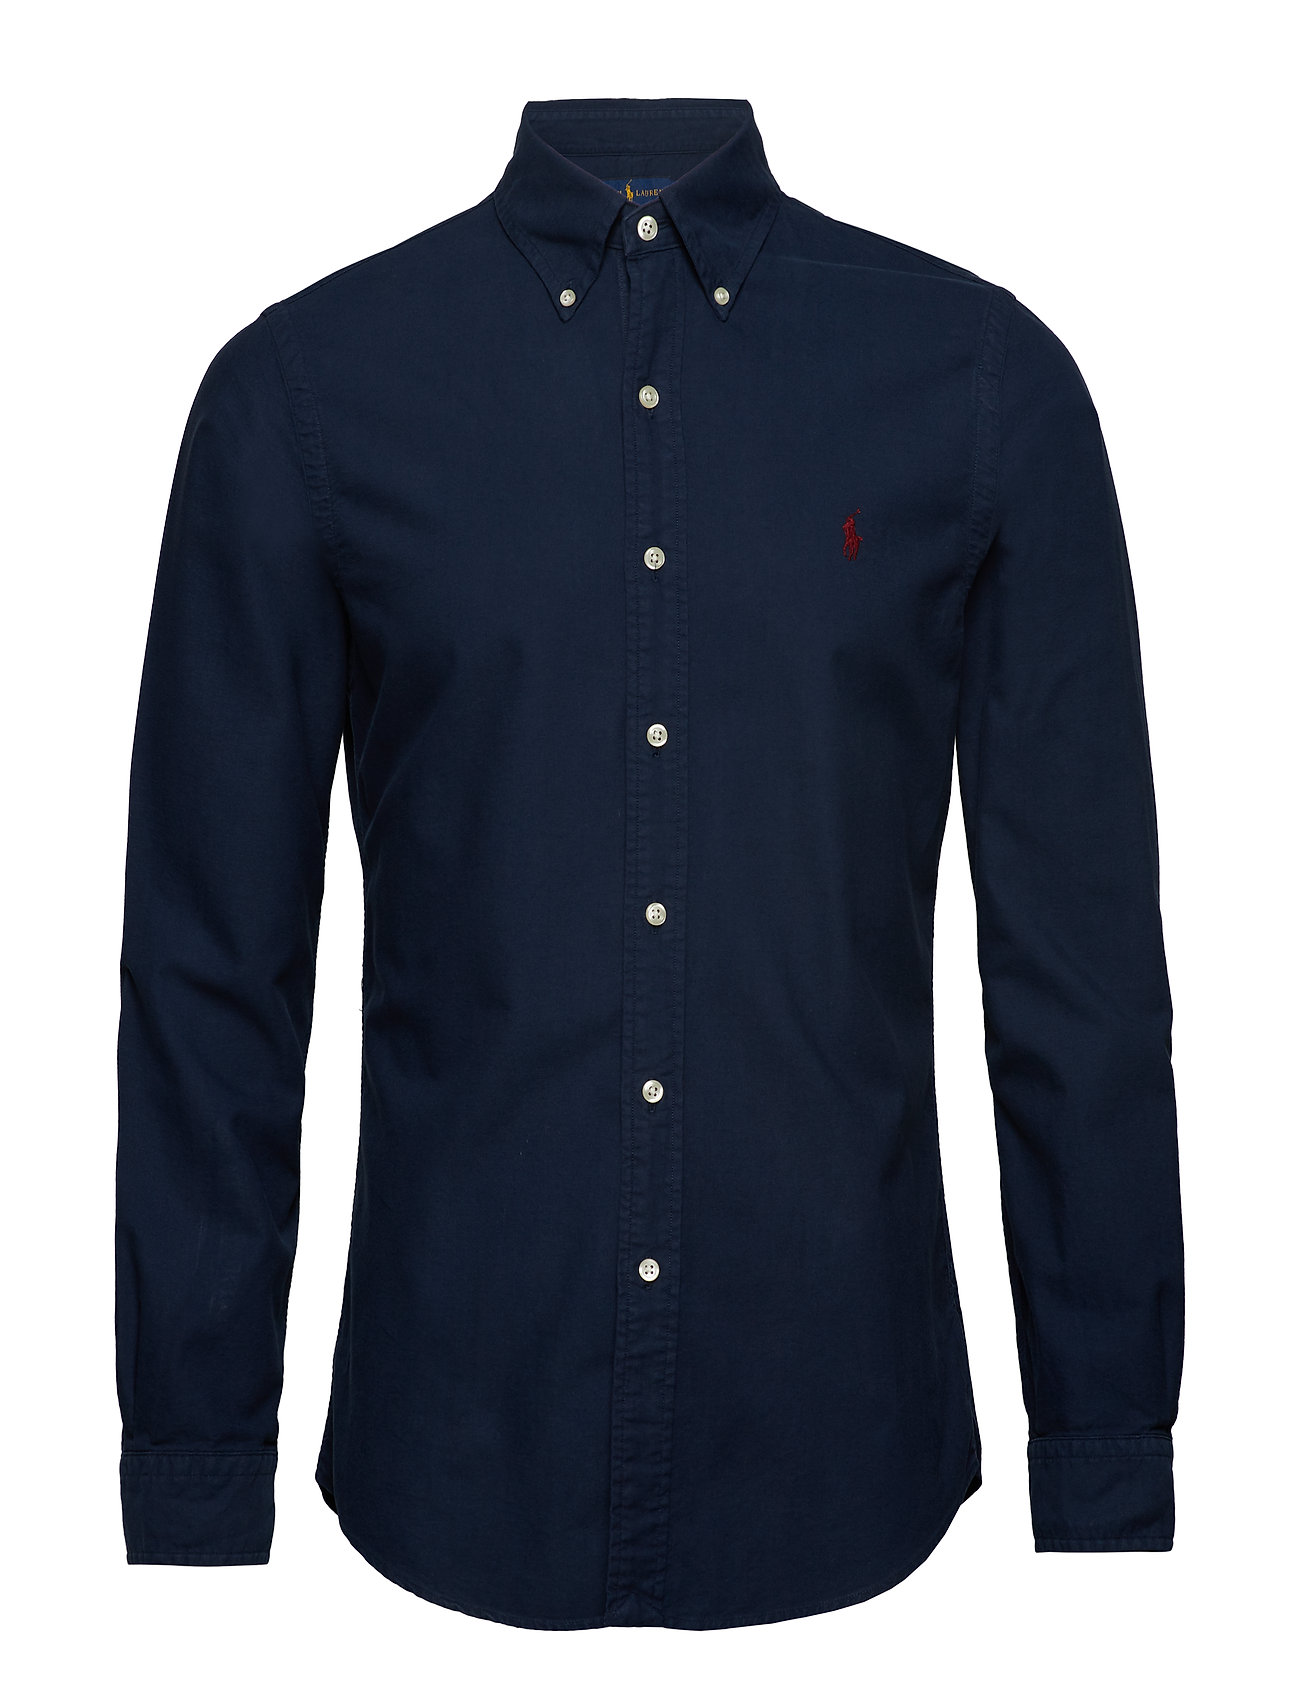 Polo Ralph Lauren Slim Fit Cotton Oxford Shirt - CRUISE NAVY